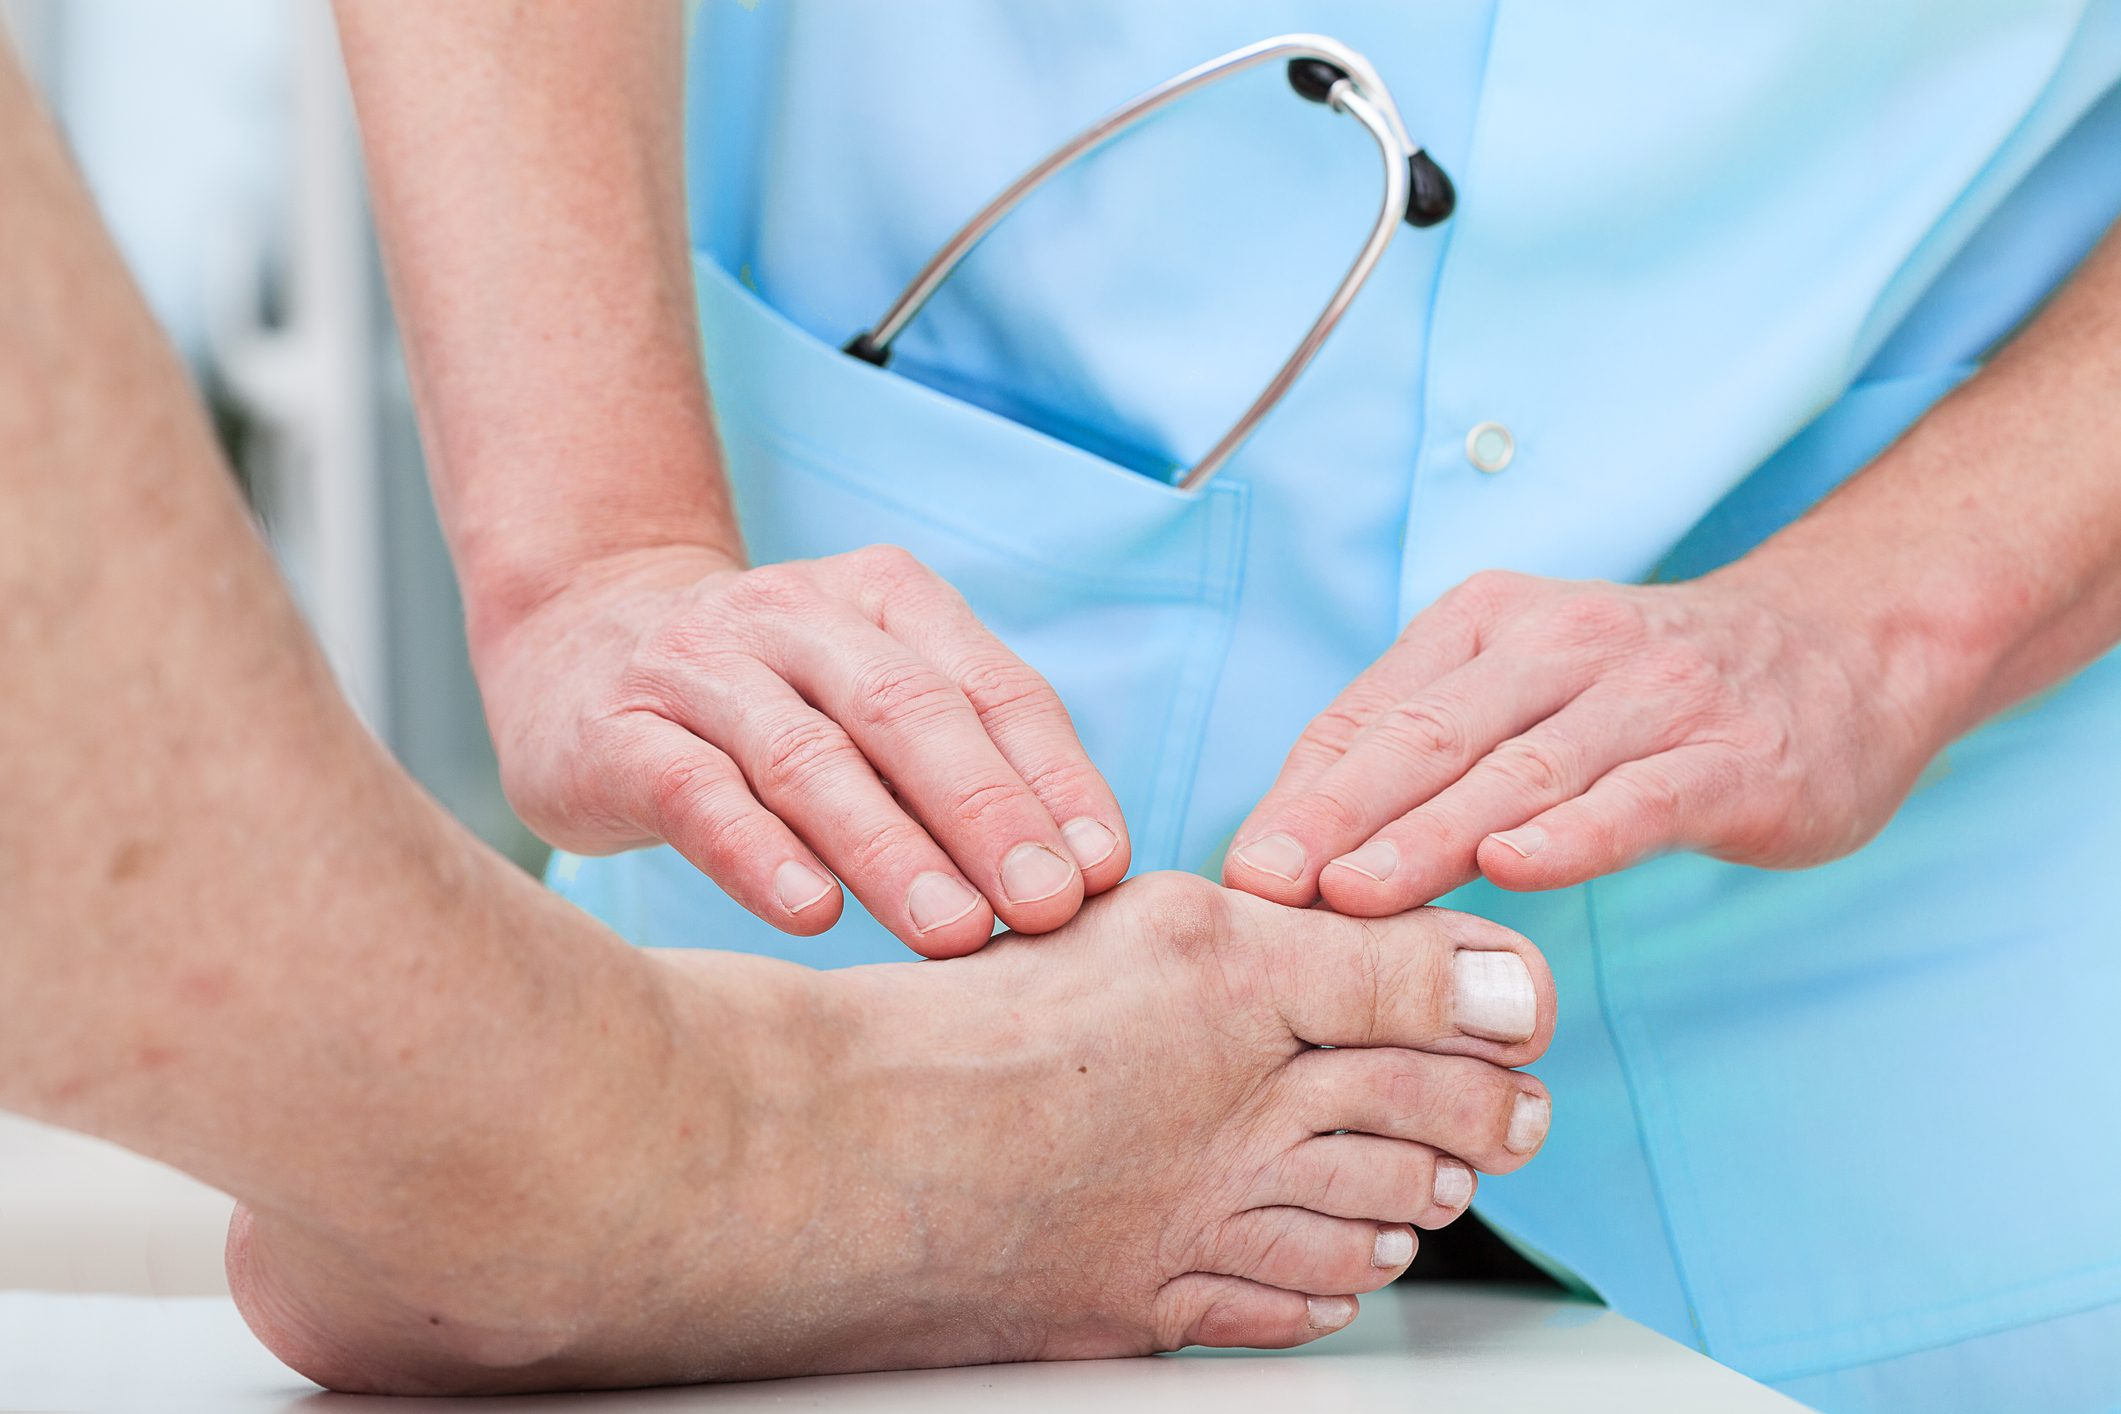 doctor examining patient's foot